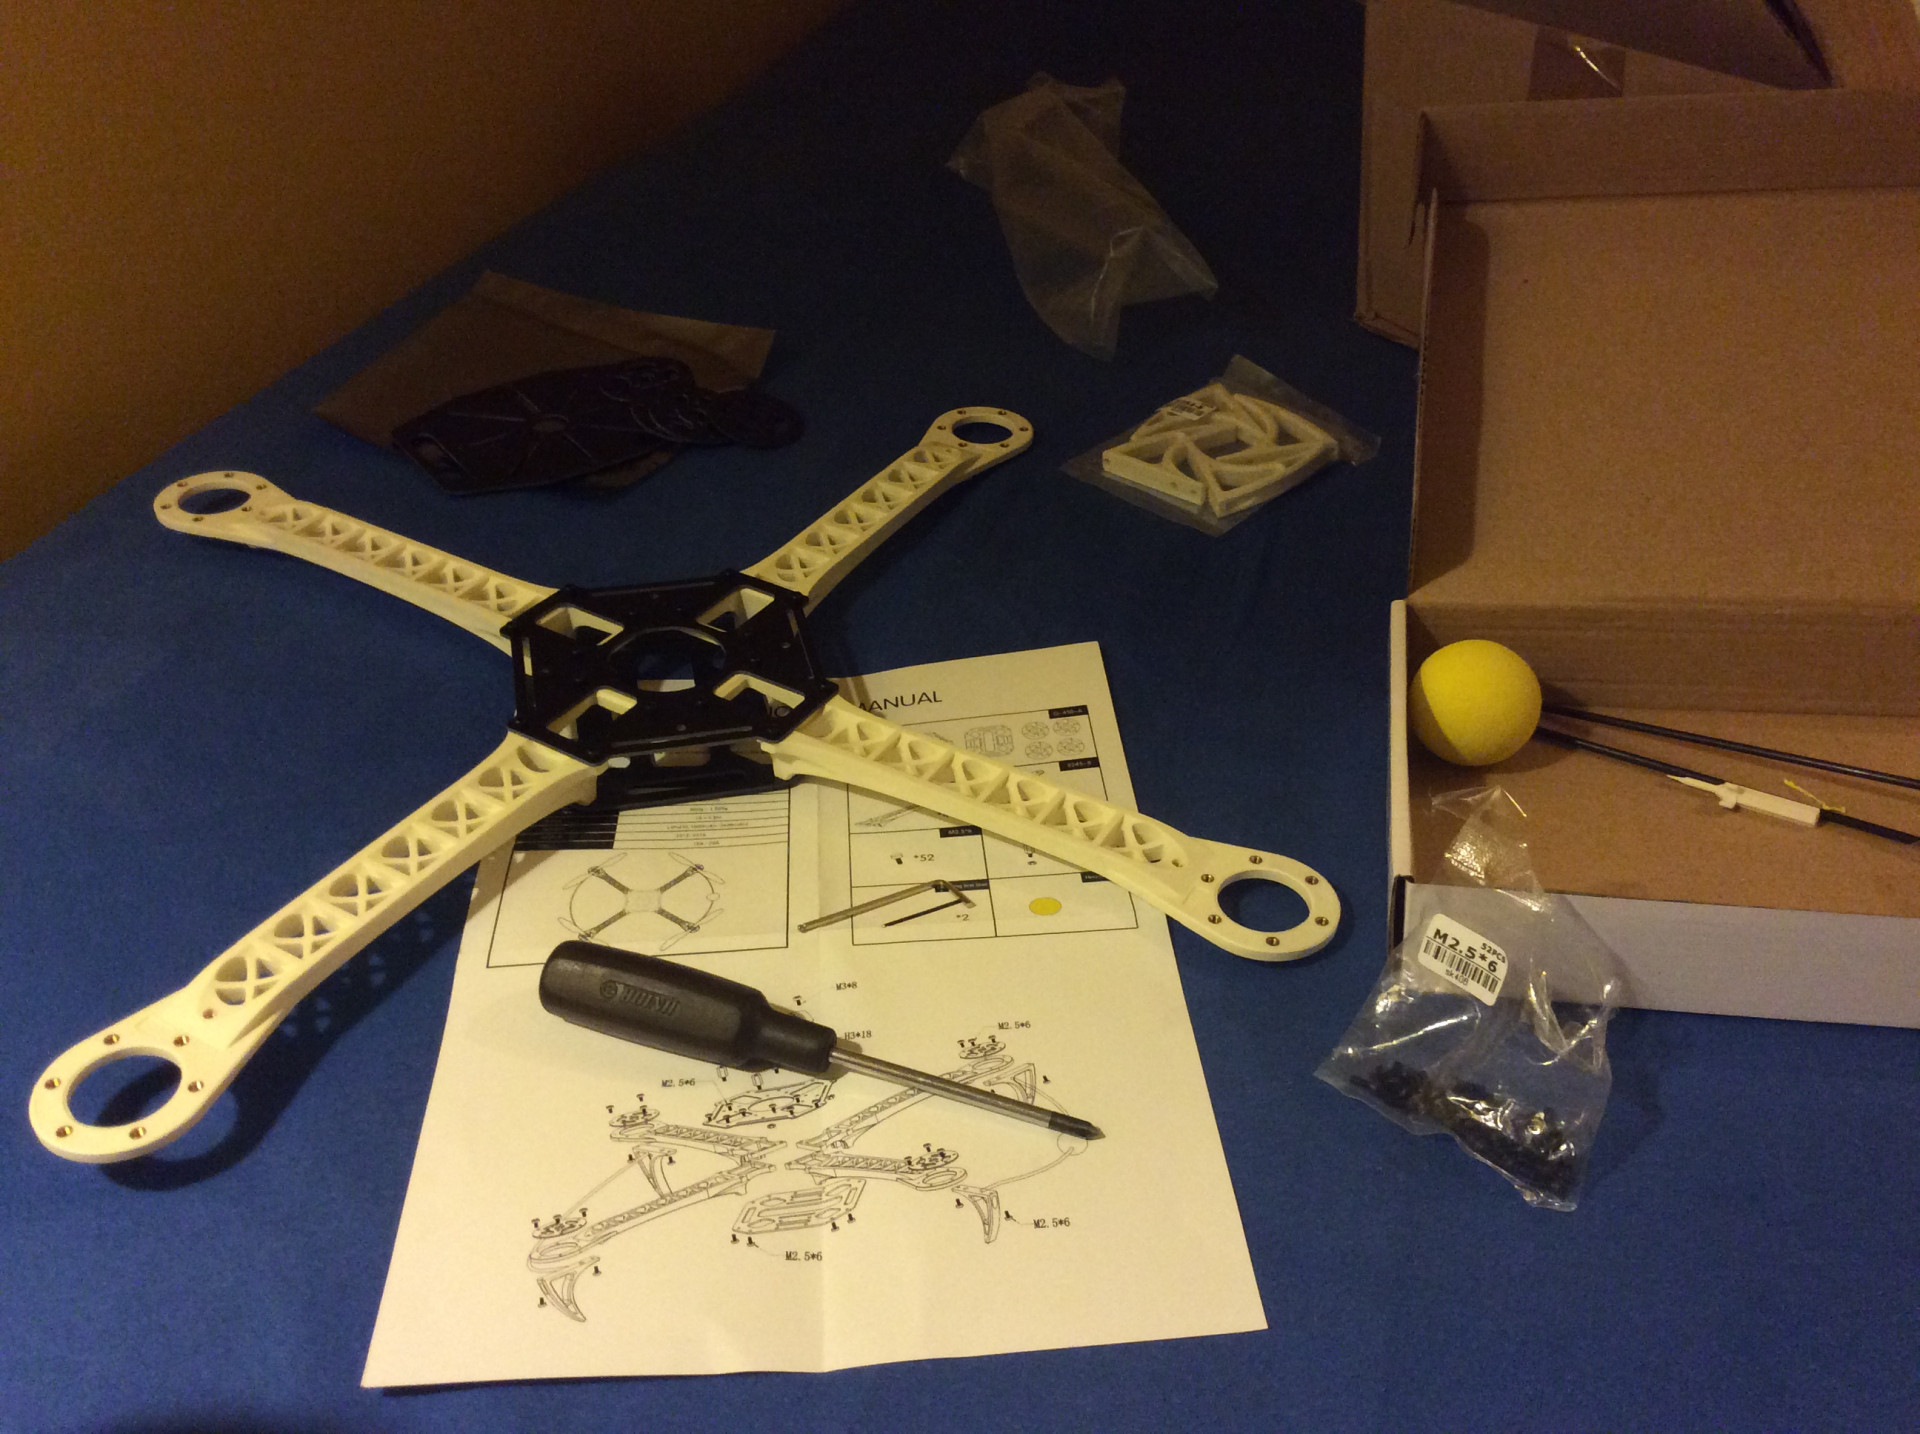 Building my own quadcopter drone – part 1